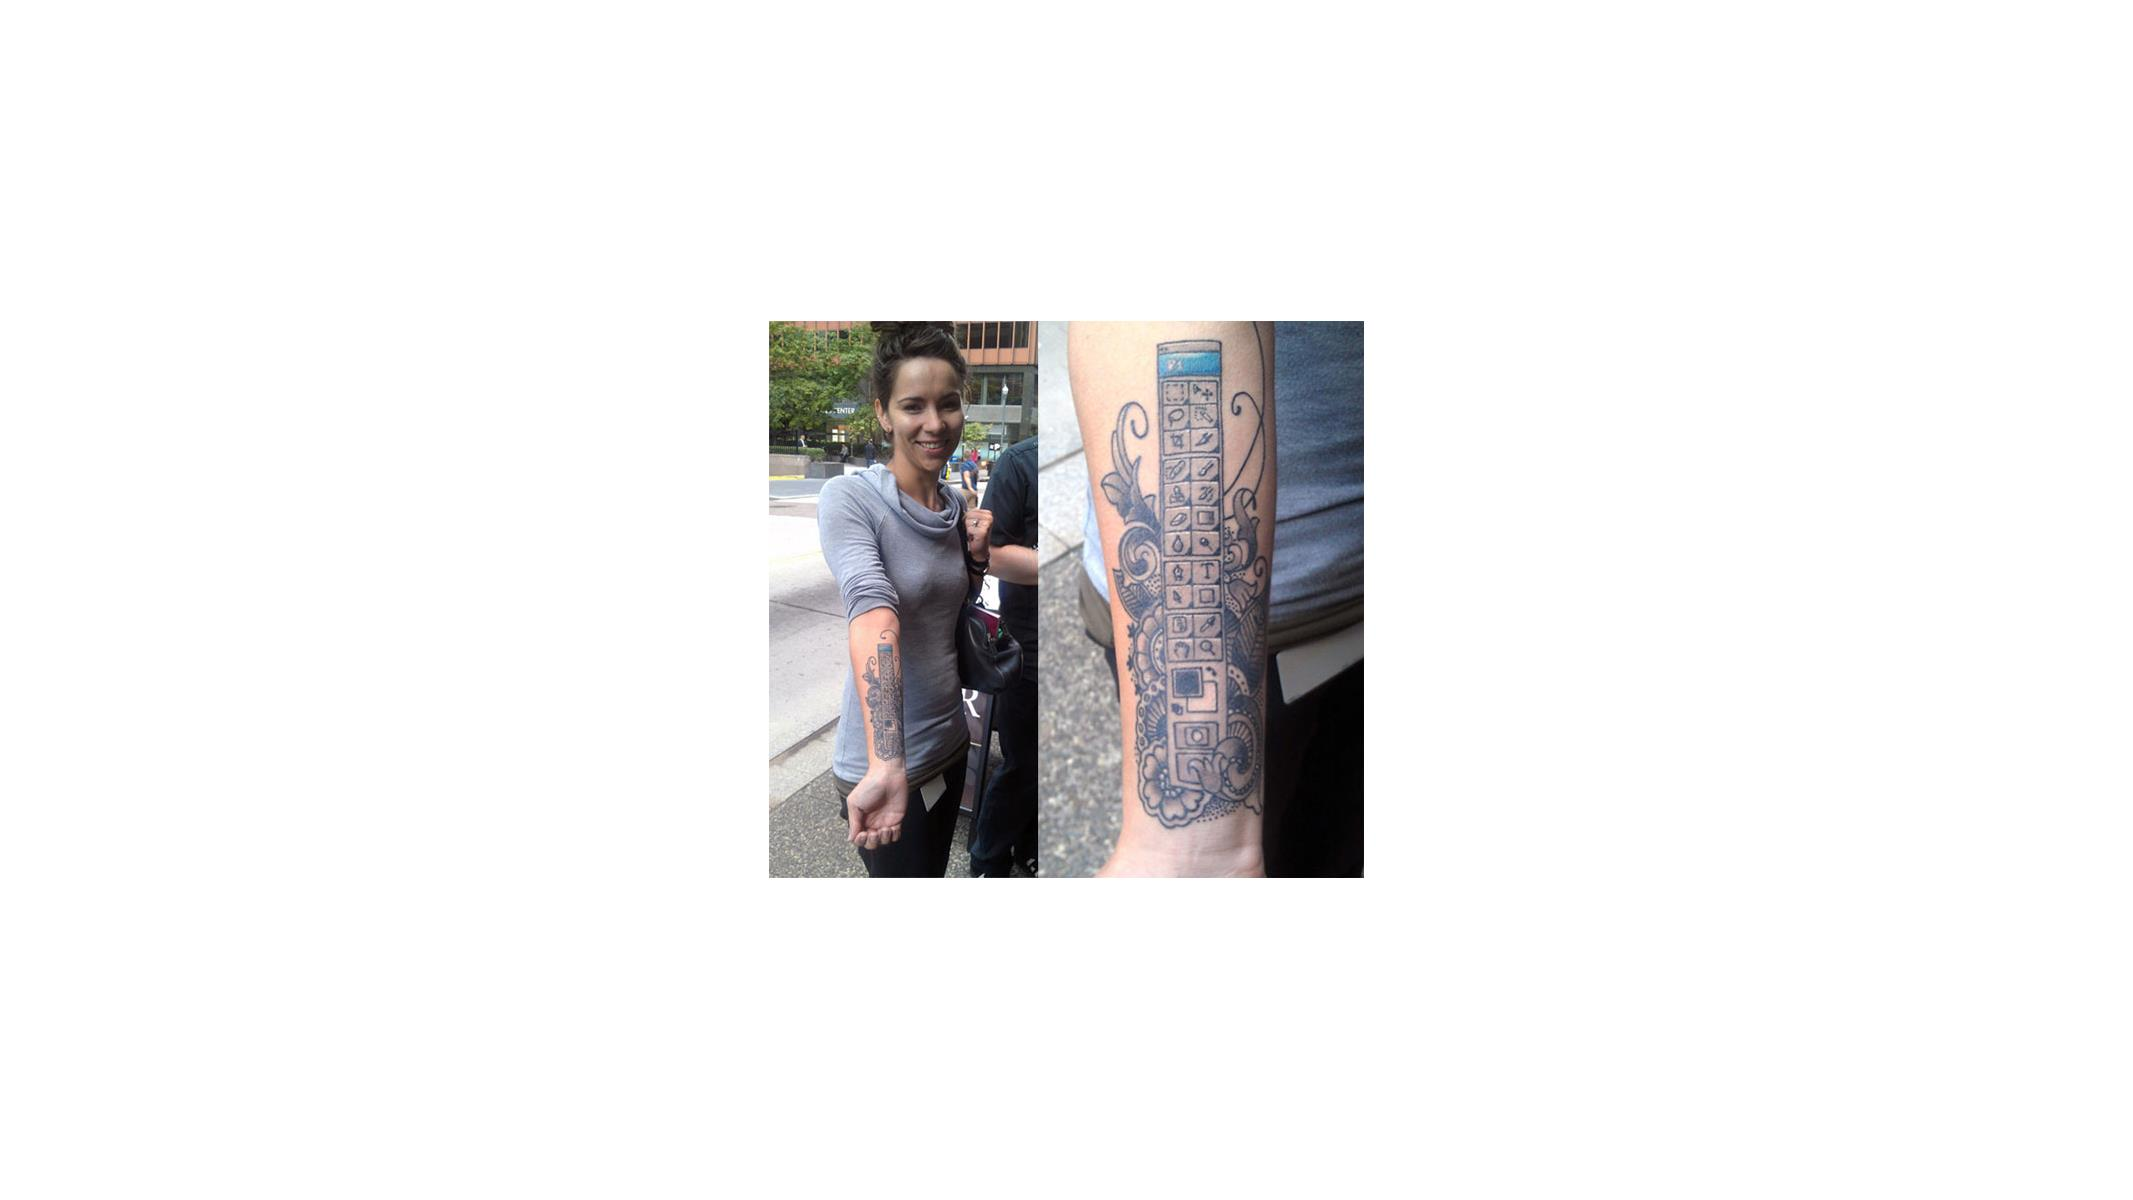 Forget Dragons Here S The Girl With The Photoshop Tattoo Hothardware